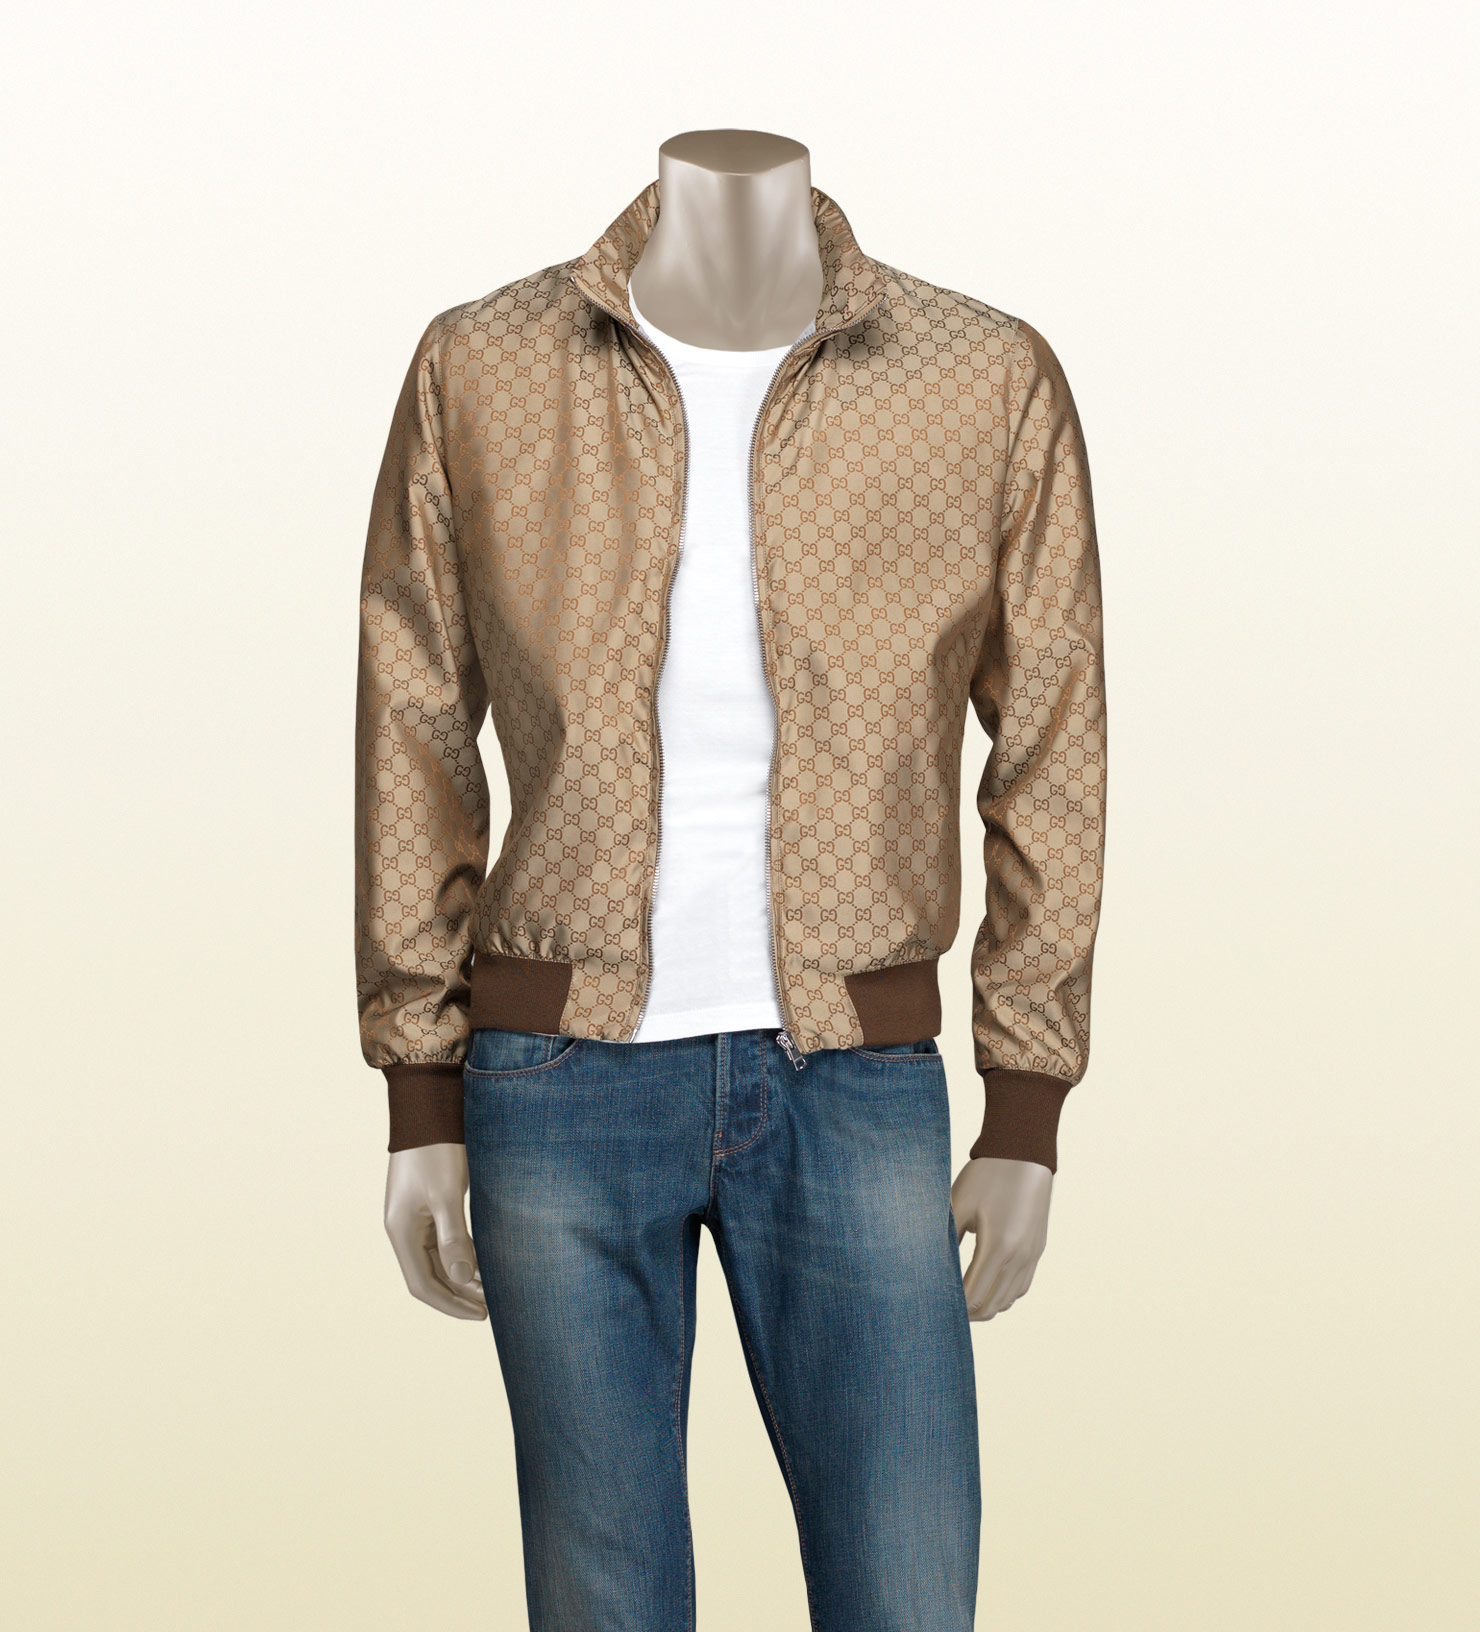 Lyst - Gucci Gg Pattern Nylon Jacket in Brown for Men 08424392f